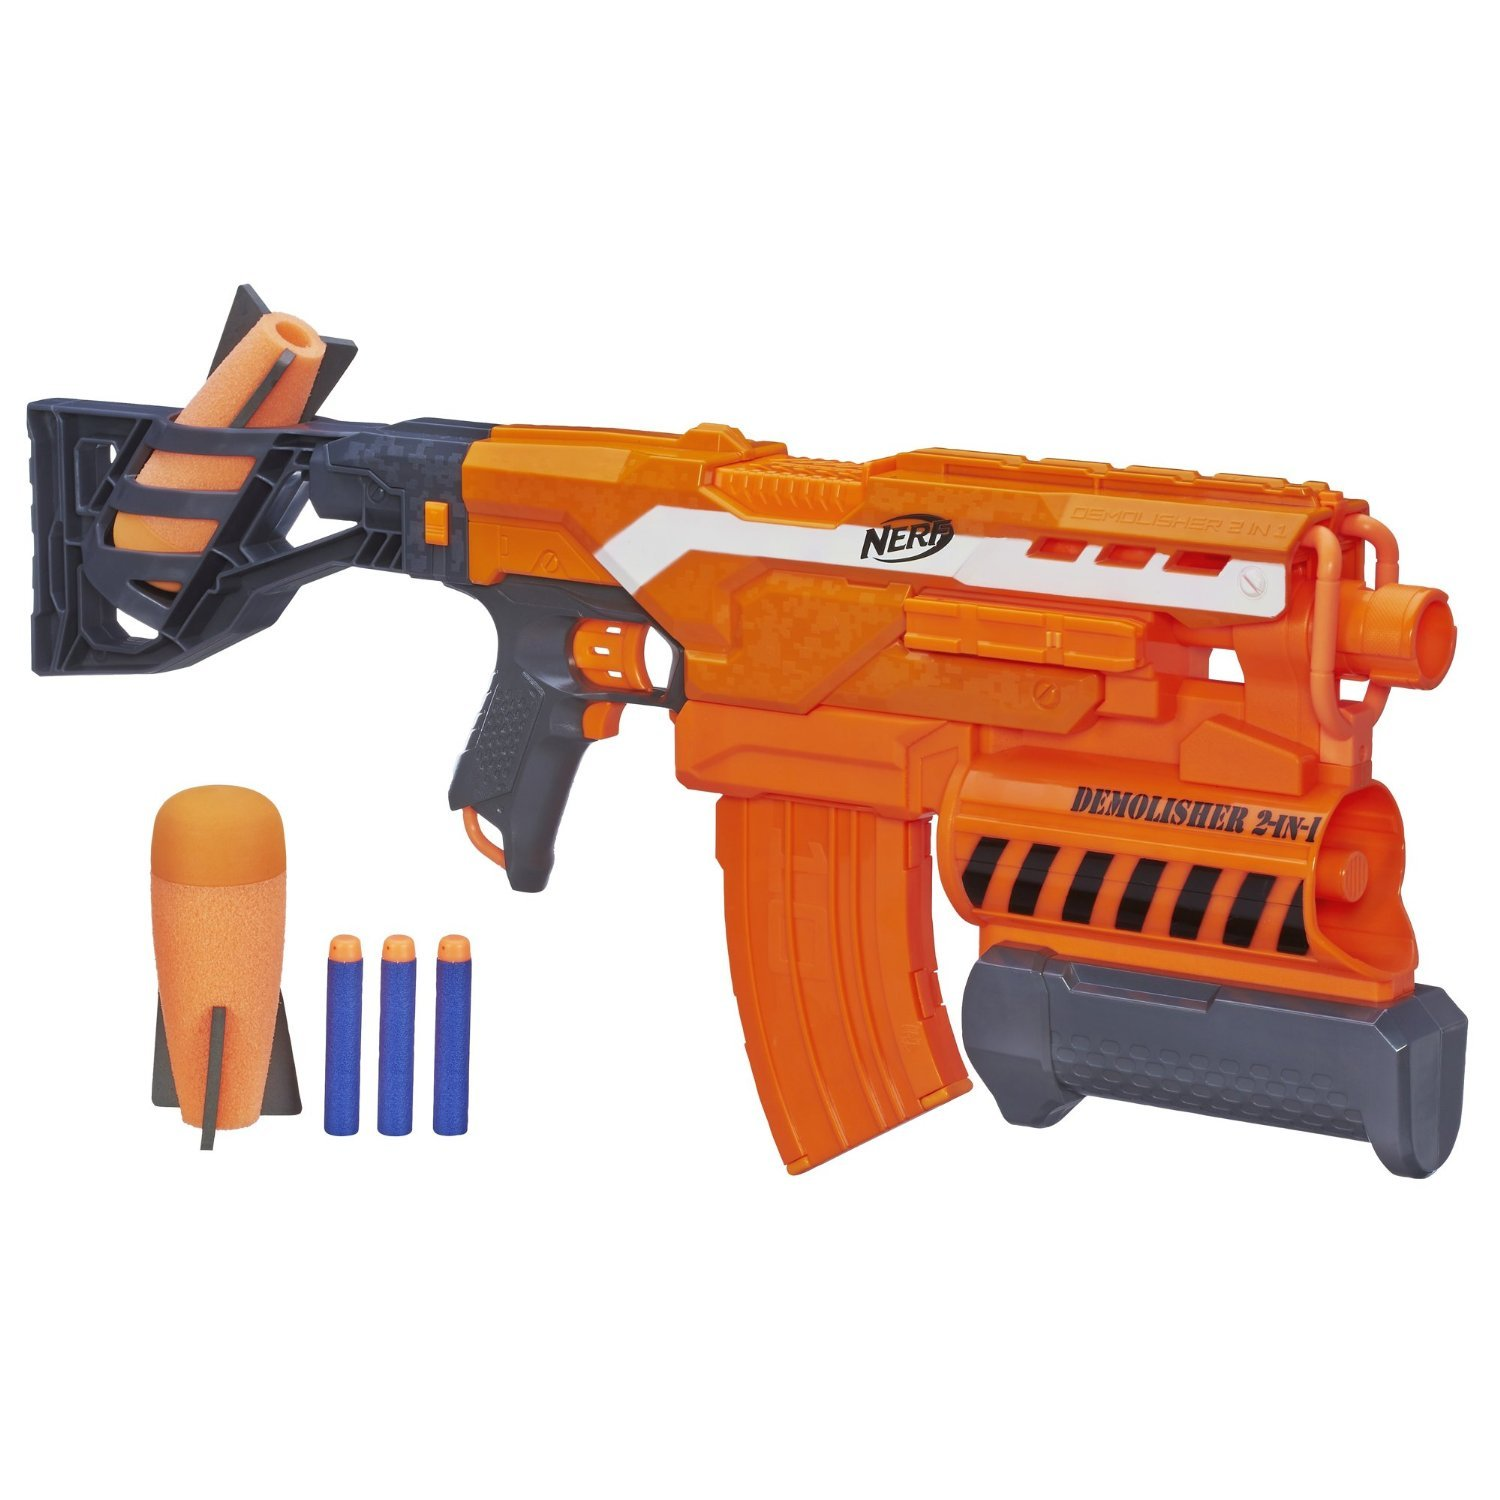 Nerf N strike Elite Demolisher 2 in 1 Blaster with Extra clip and 10 Extra Darts by Nerf (Image #2)